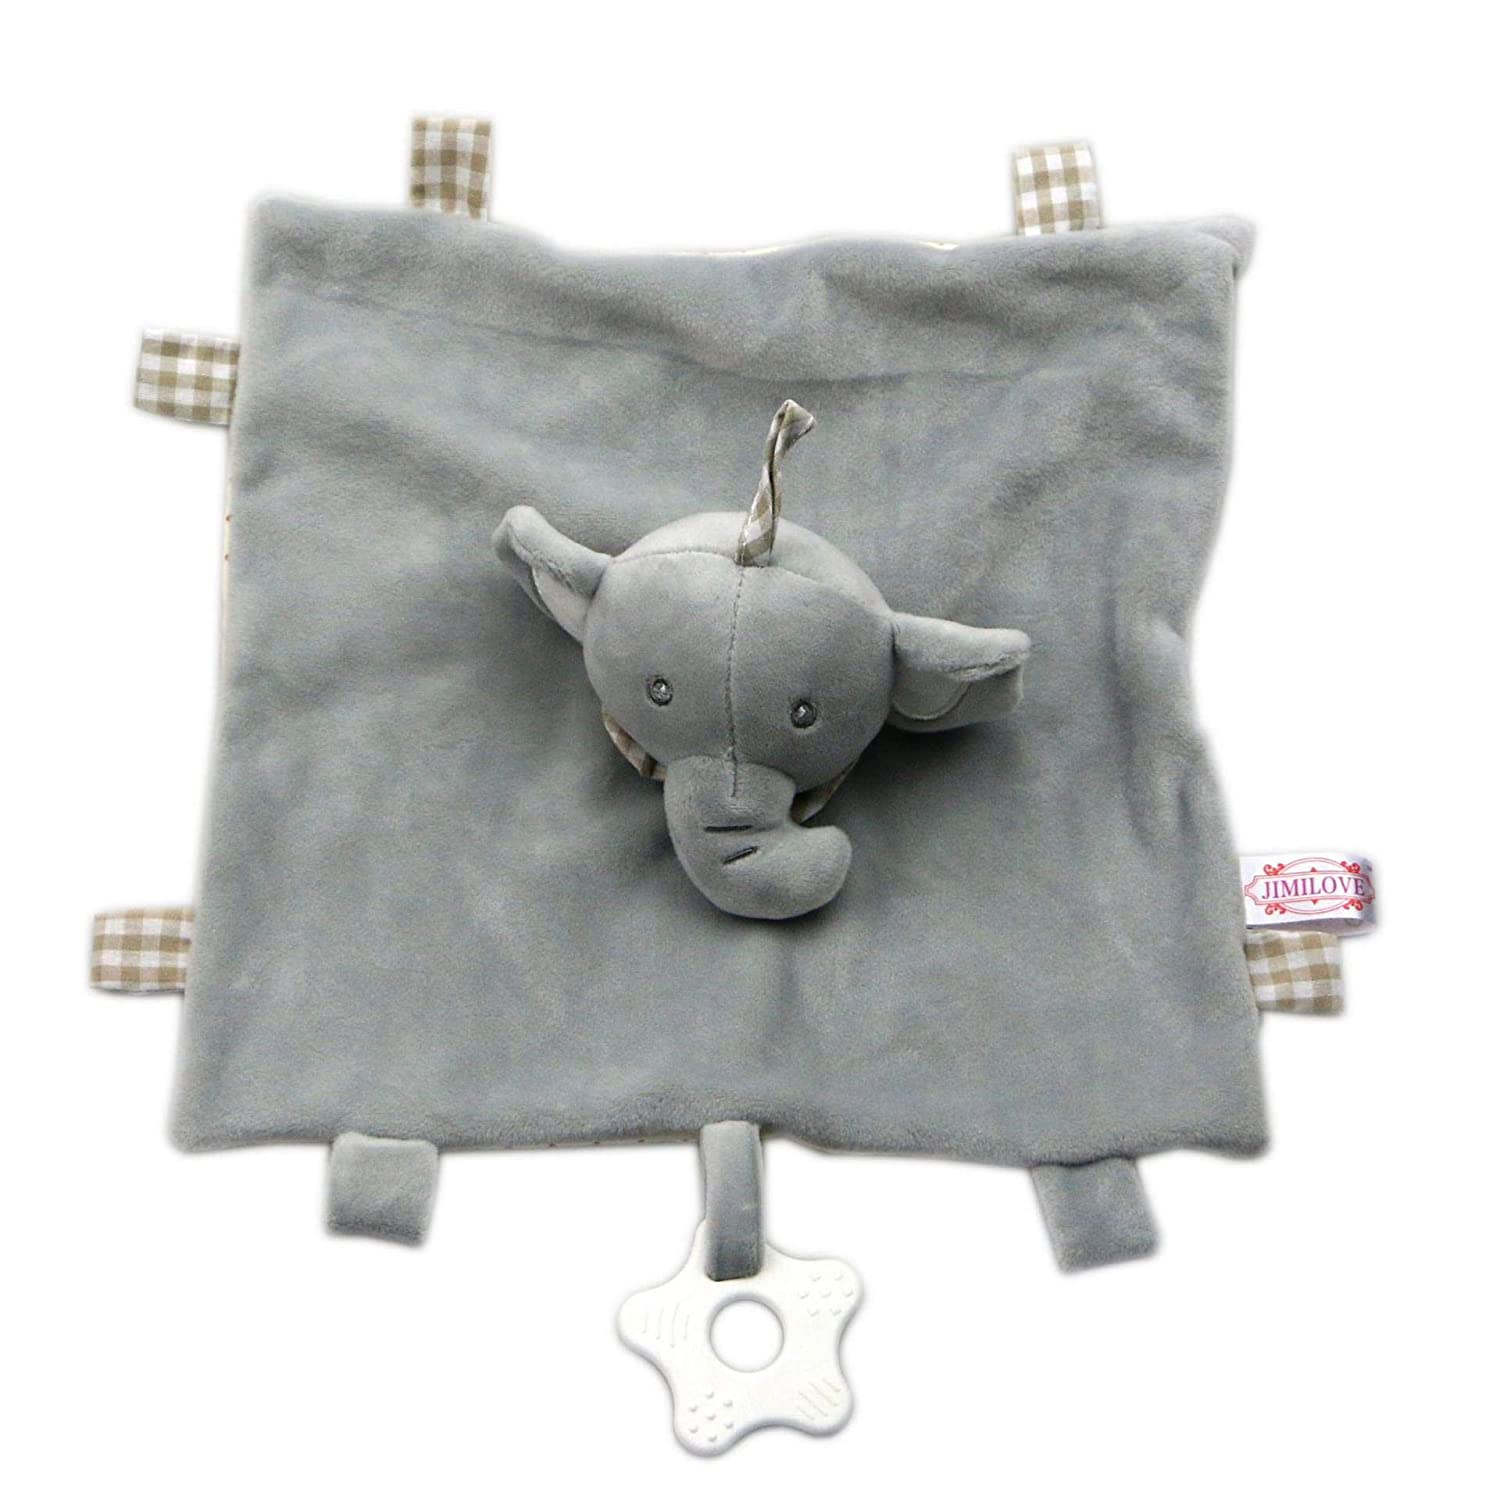 Baby Comforter Toy YANWIN Stuffed Animal Elephant Comfort Blanket Plush Toys for Infant//Baby Security Soft Appease Towel